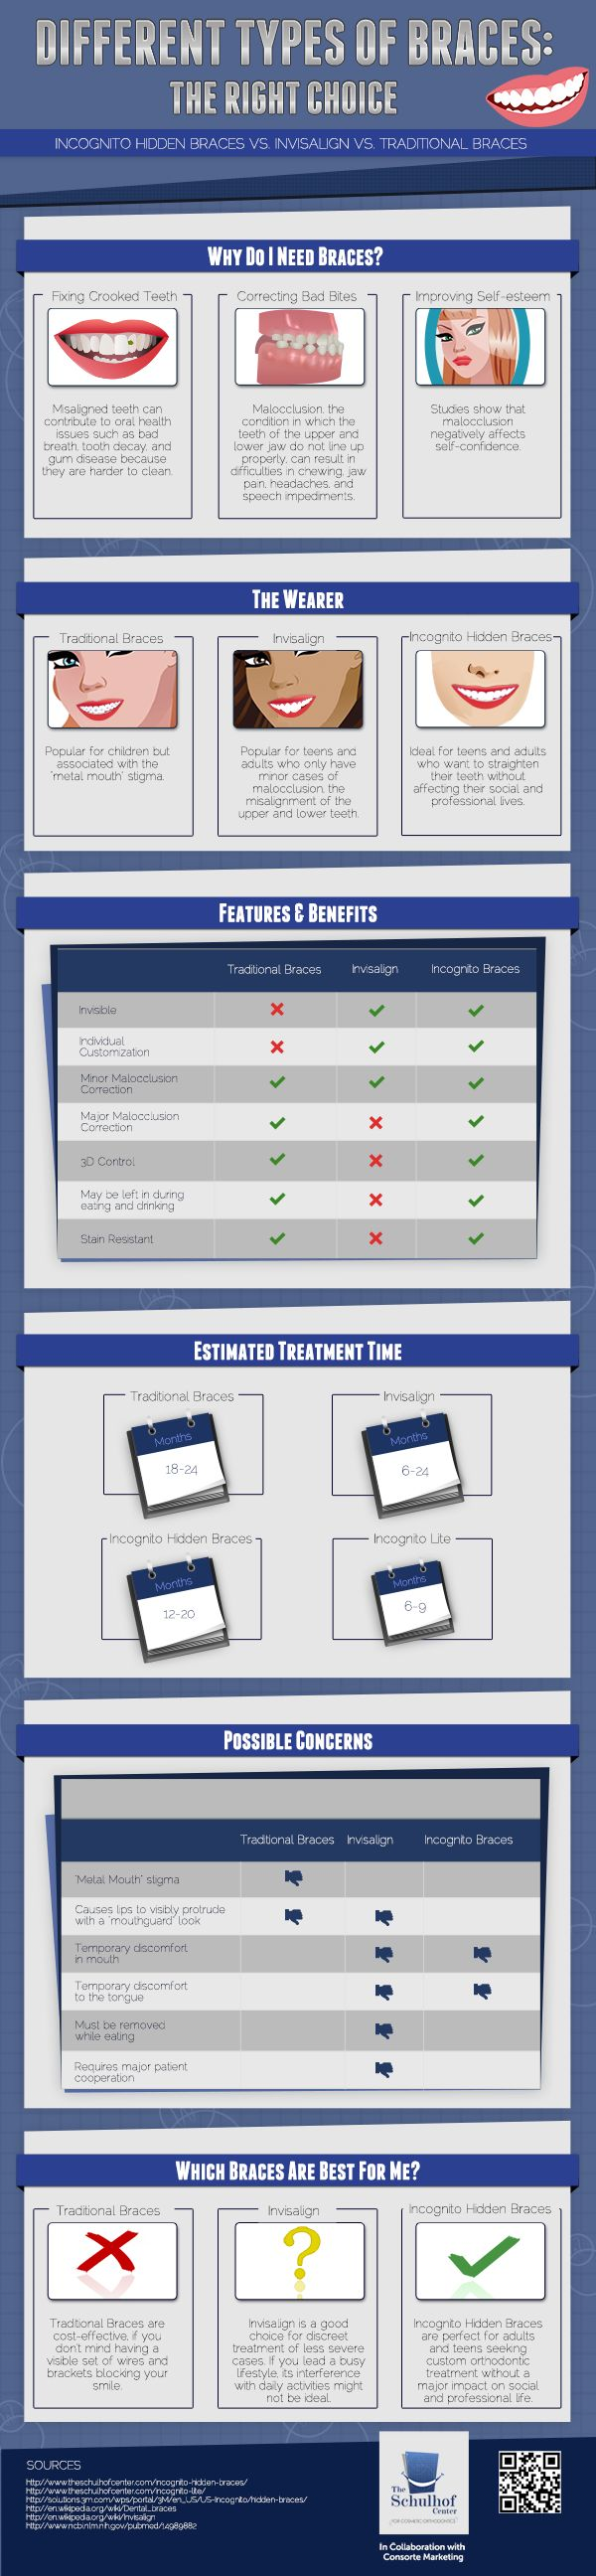 What Types of Braces are Right For Me? - discover infographics